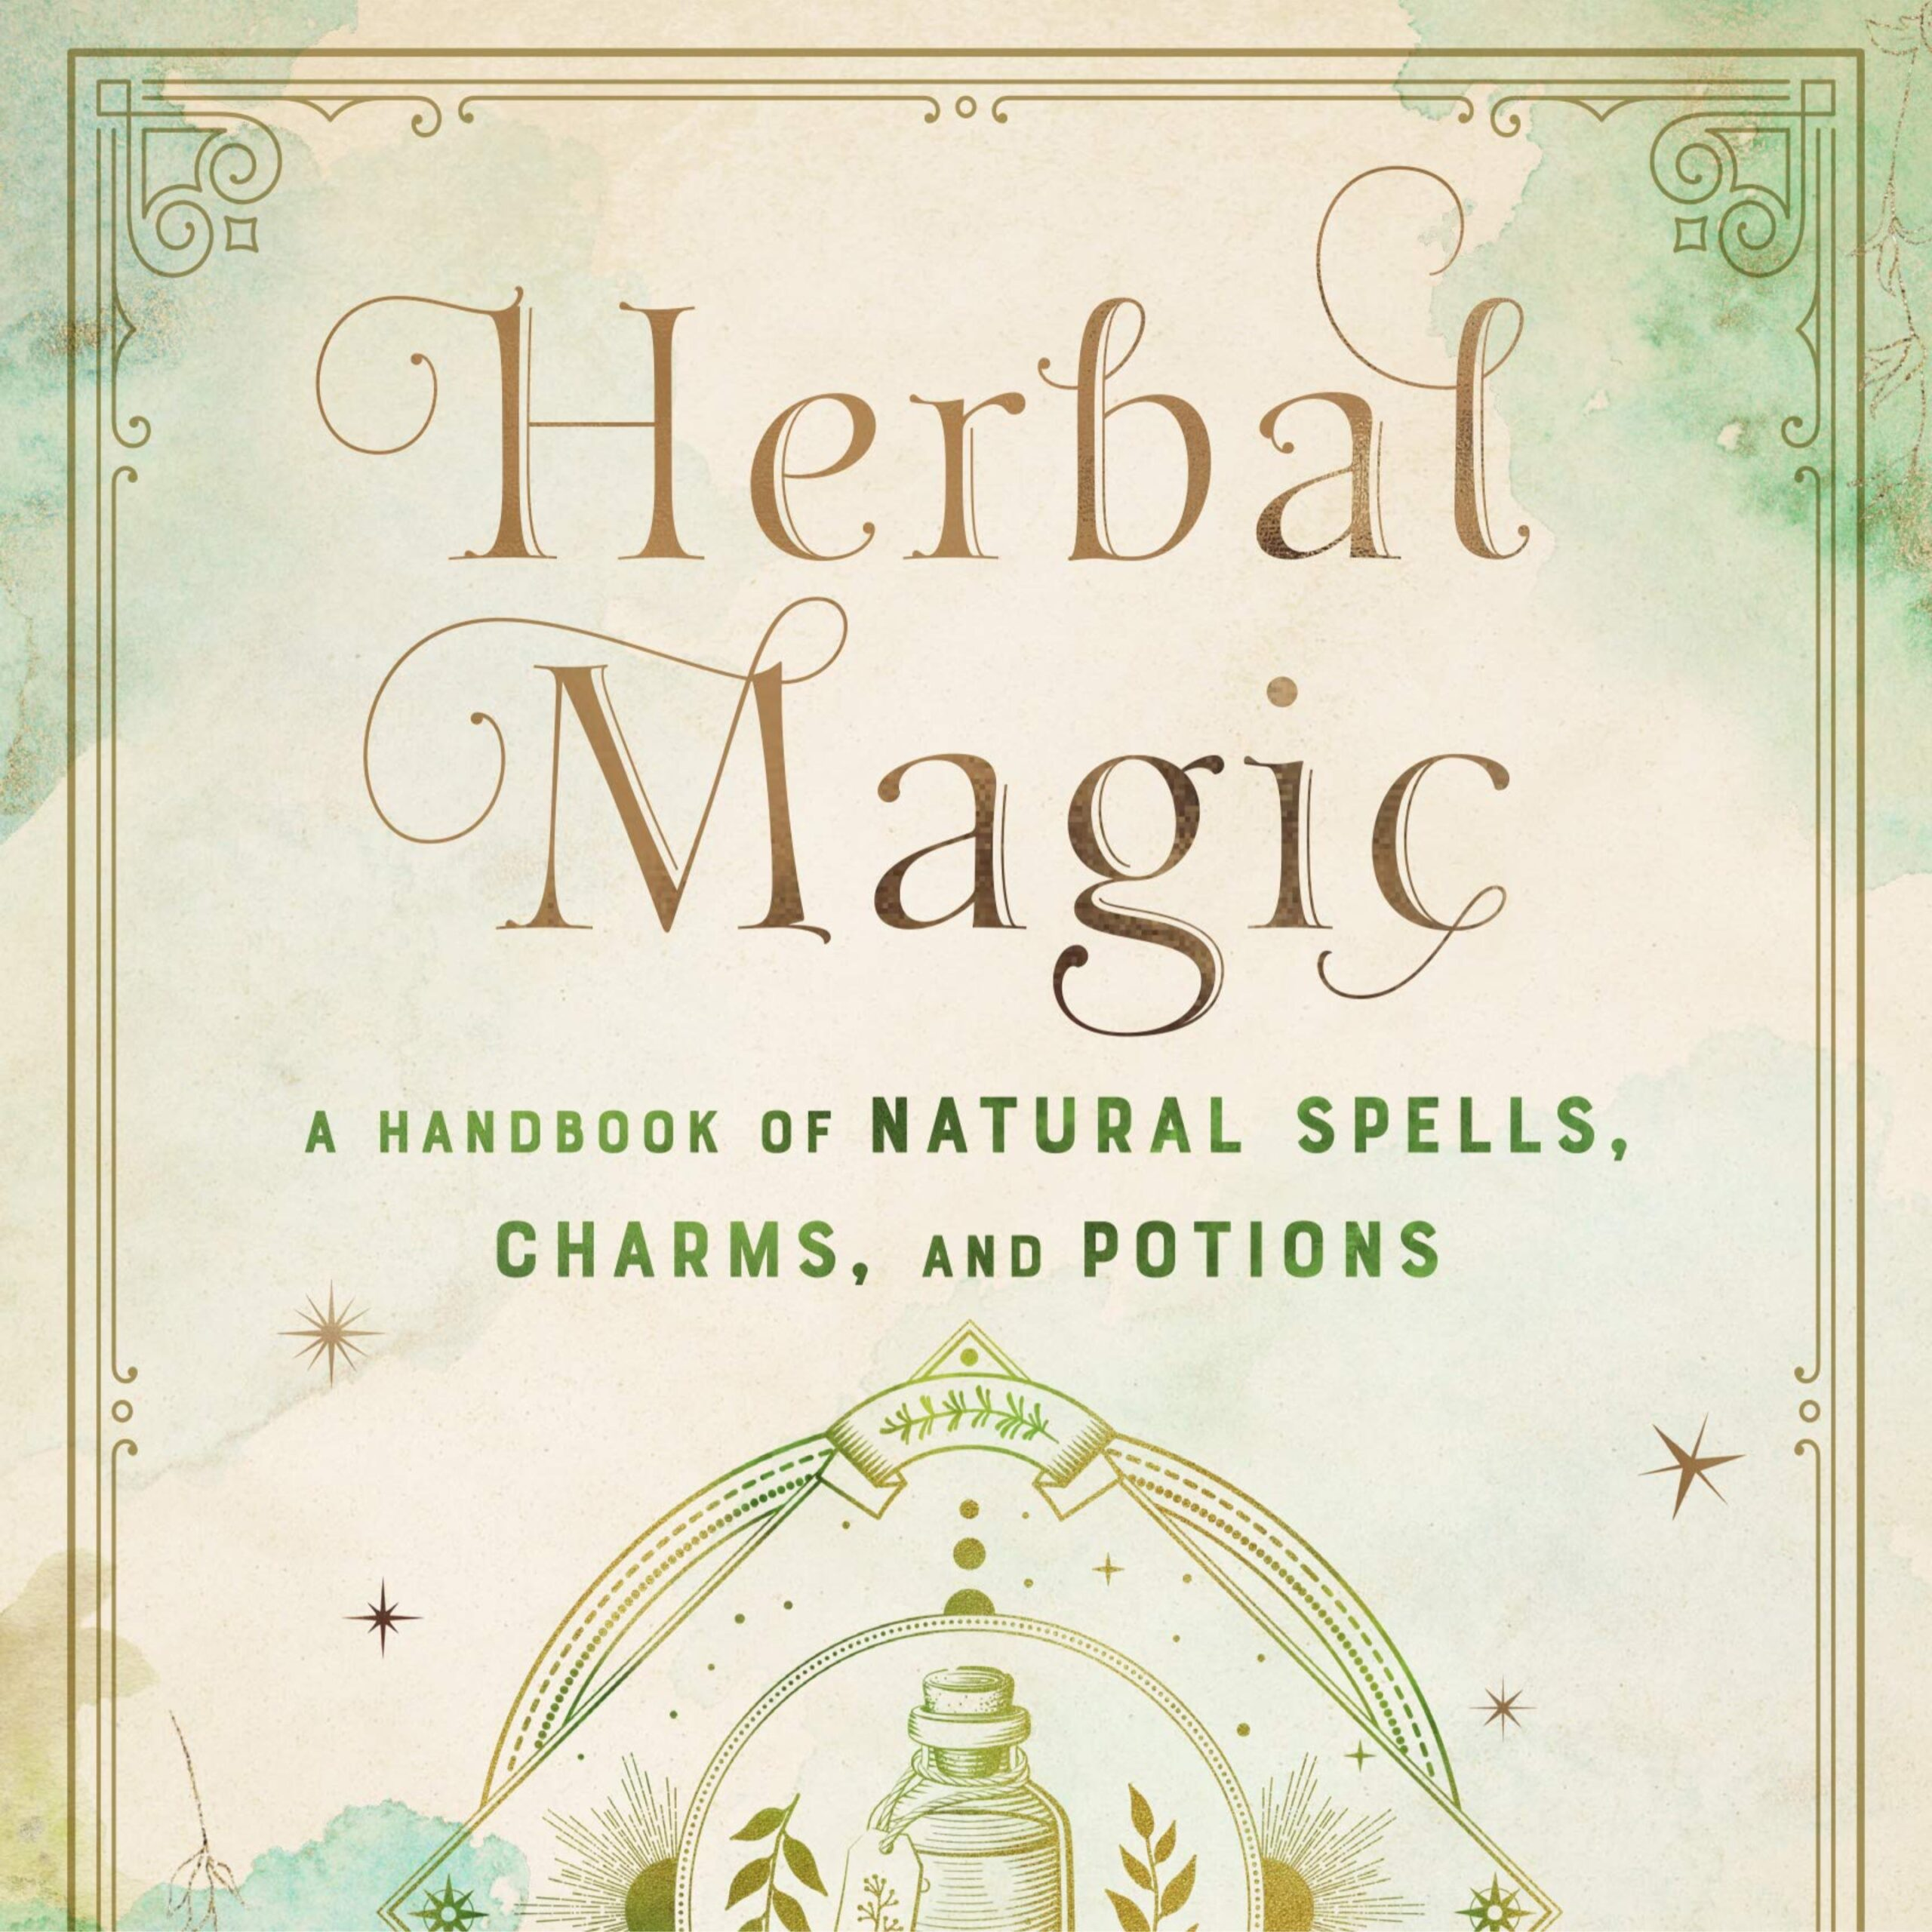 dr-tumbletys-pittsburgh-pennsylvania-allentown-hilltop-inspired-by-spirits-distilling-co-storyville-lounge-herbal-magic-handbook-natural-spells-charms-potions-witch-majick-wicca-vegan-vegetarian-ritual-aurora-kane-elixirs